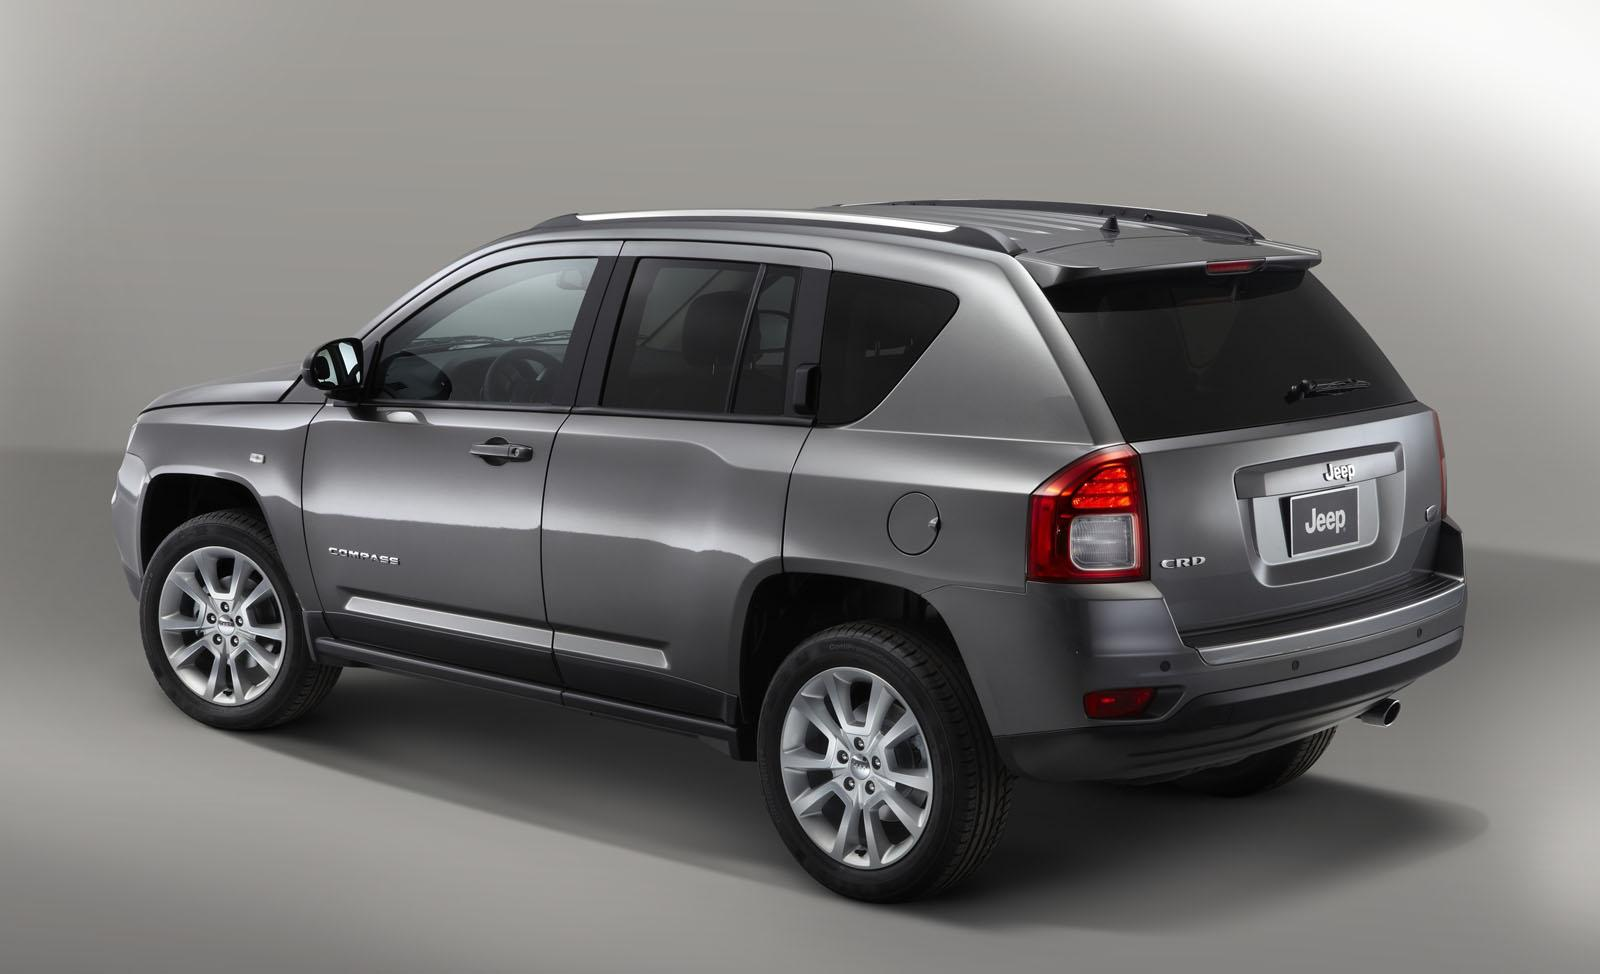 2013 Jeep Compass Overland 1 Jeep to launch 2013 three models at Paris Motor Show